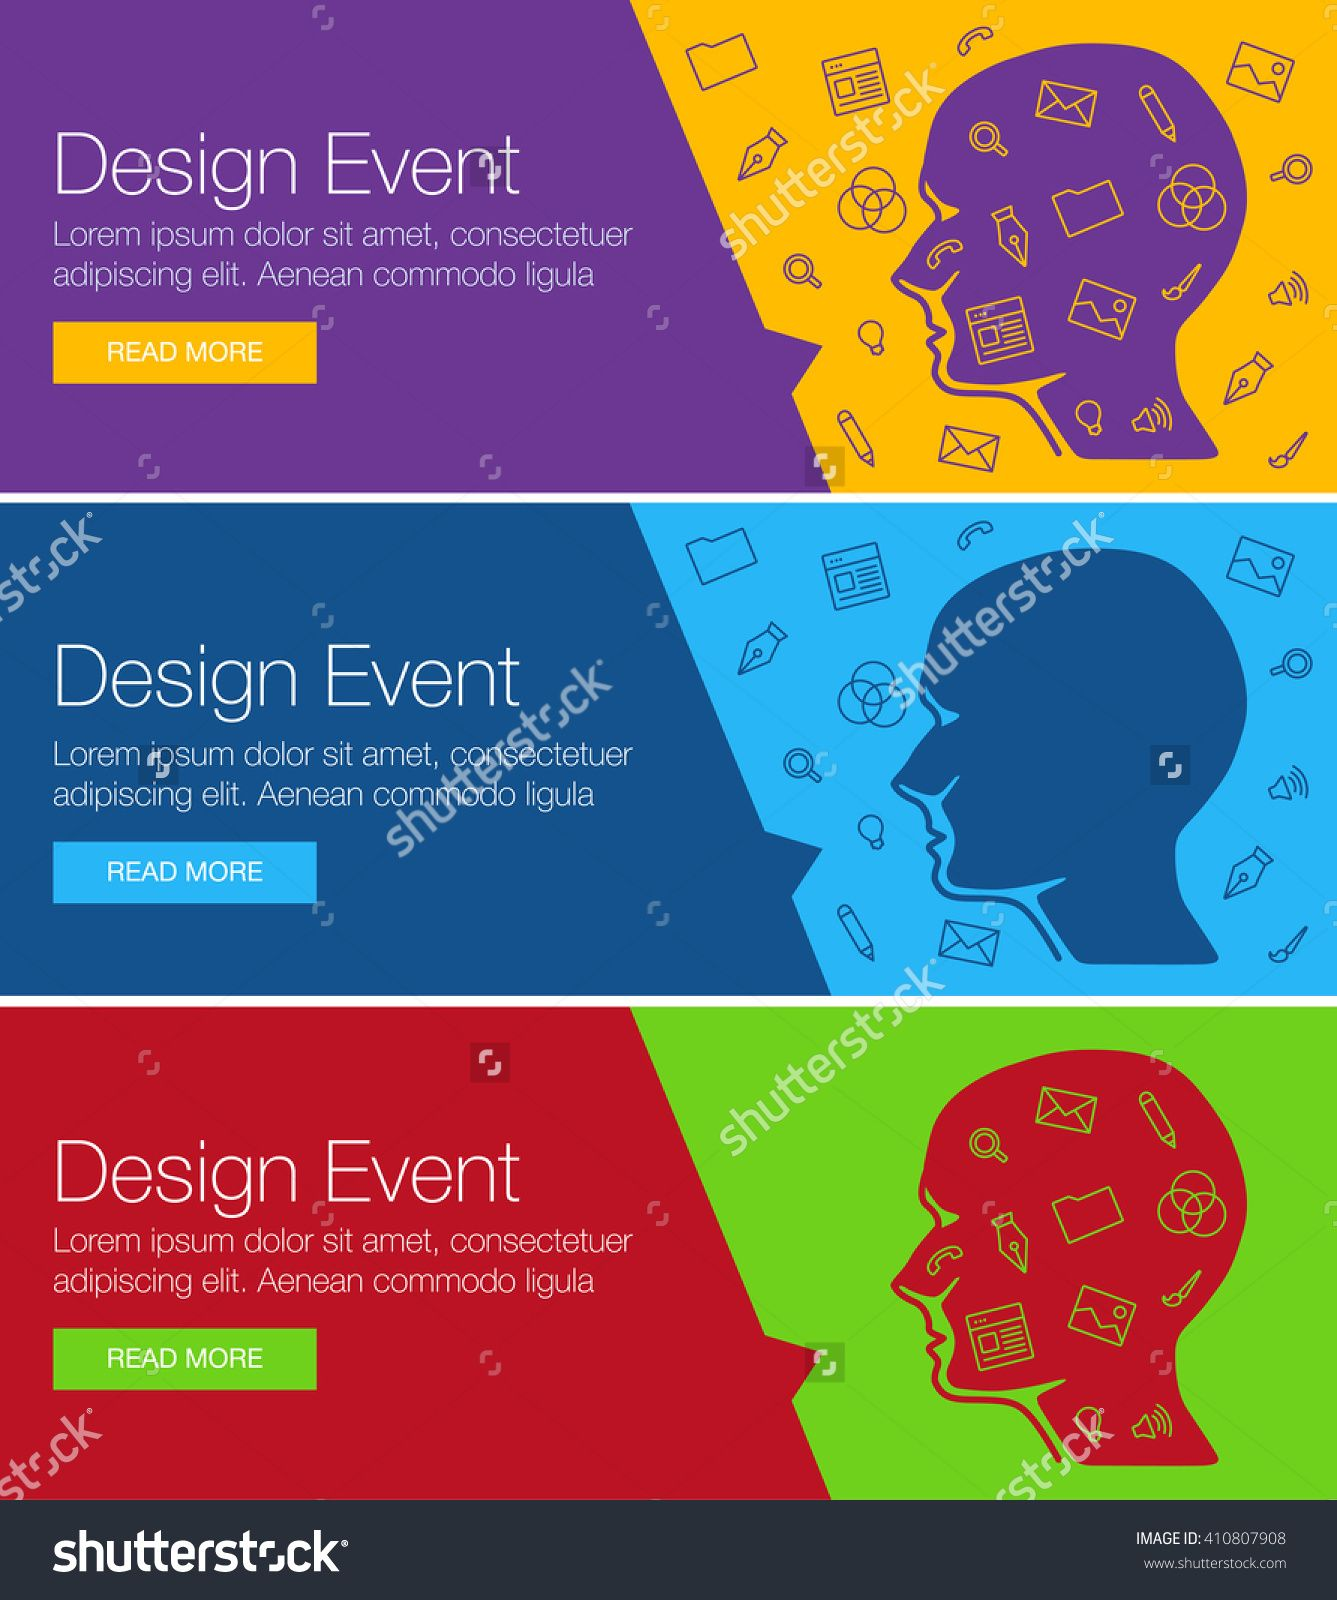 Exceptional Poster Design For Event, Online Course, Training, Workshop. Banner Design  Of Ideas. Head Ideas Of Layout For Event, Training. Design Ideas For  Hackathon ...